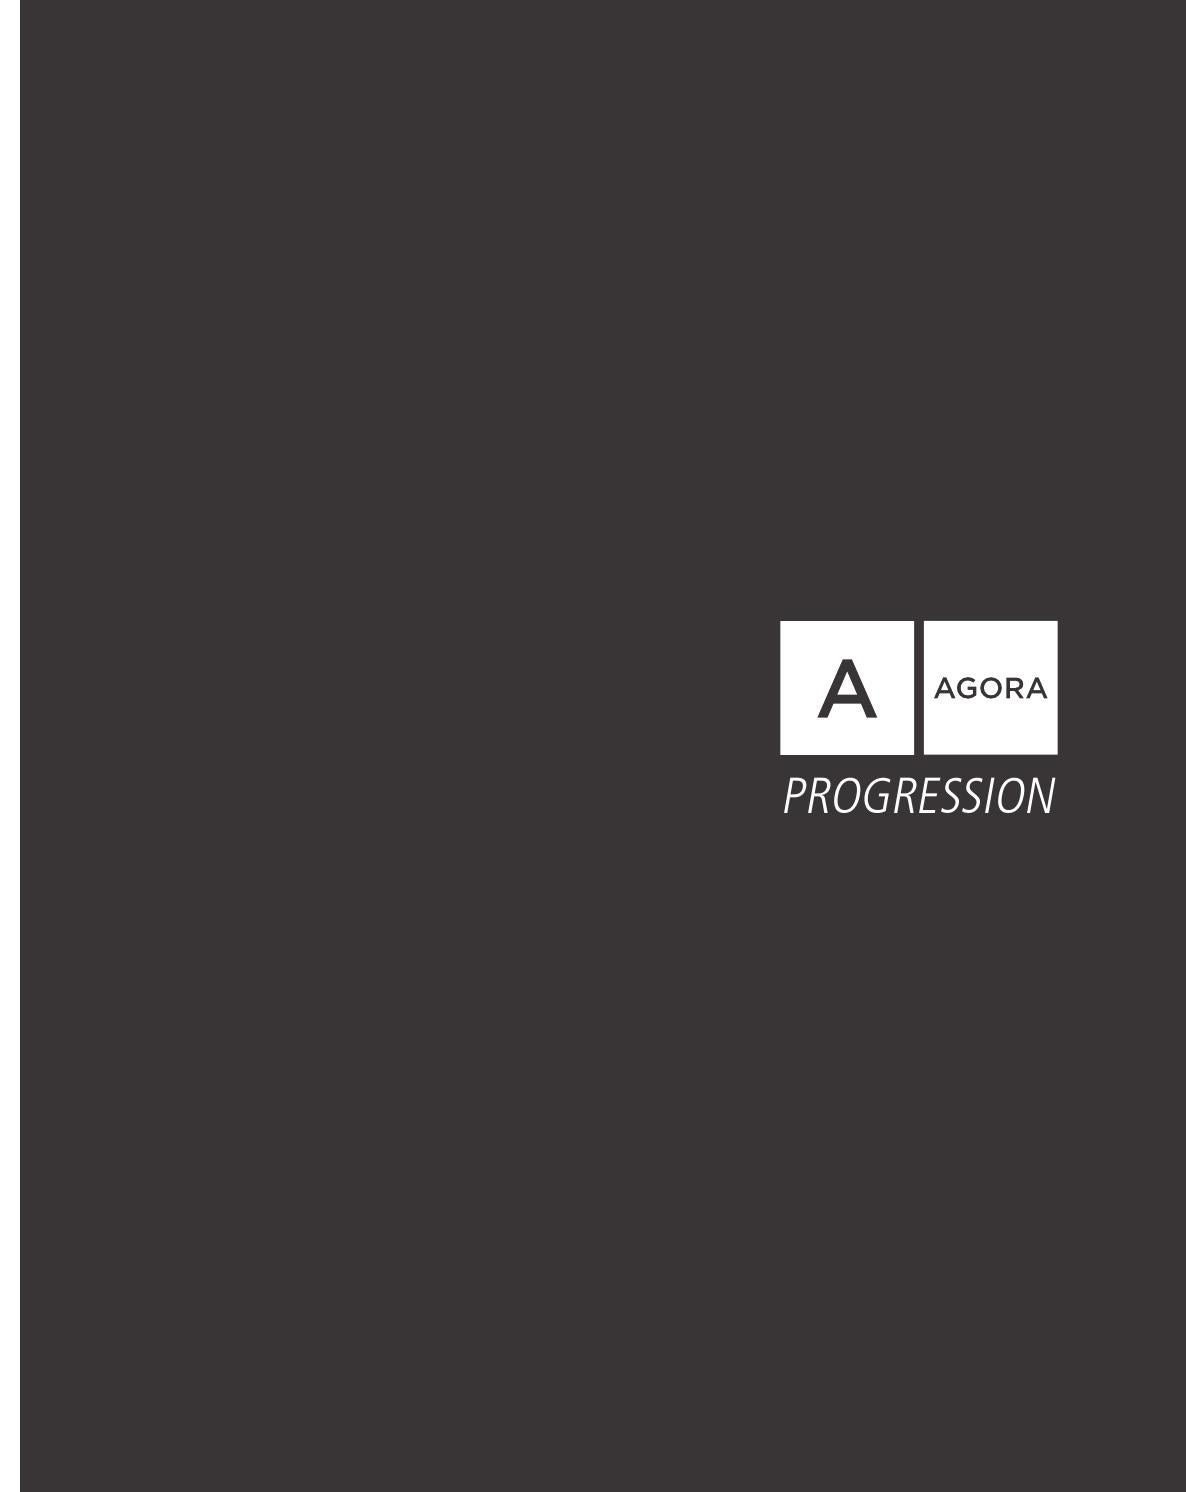 Agora Journal Of Urban Planning Design Vol 10 By Agora Journal Of Planning And Design Issuu